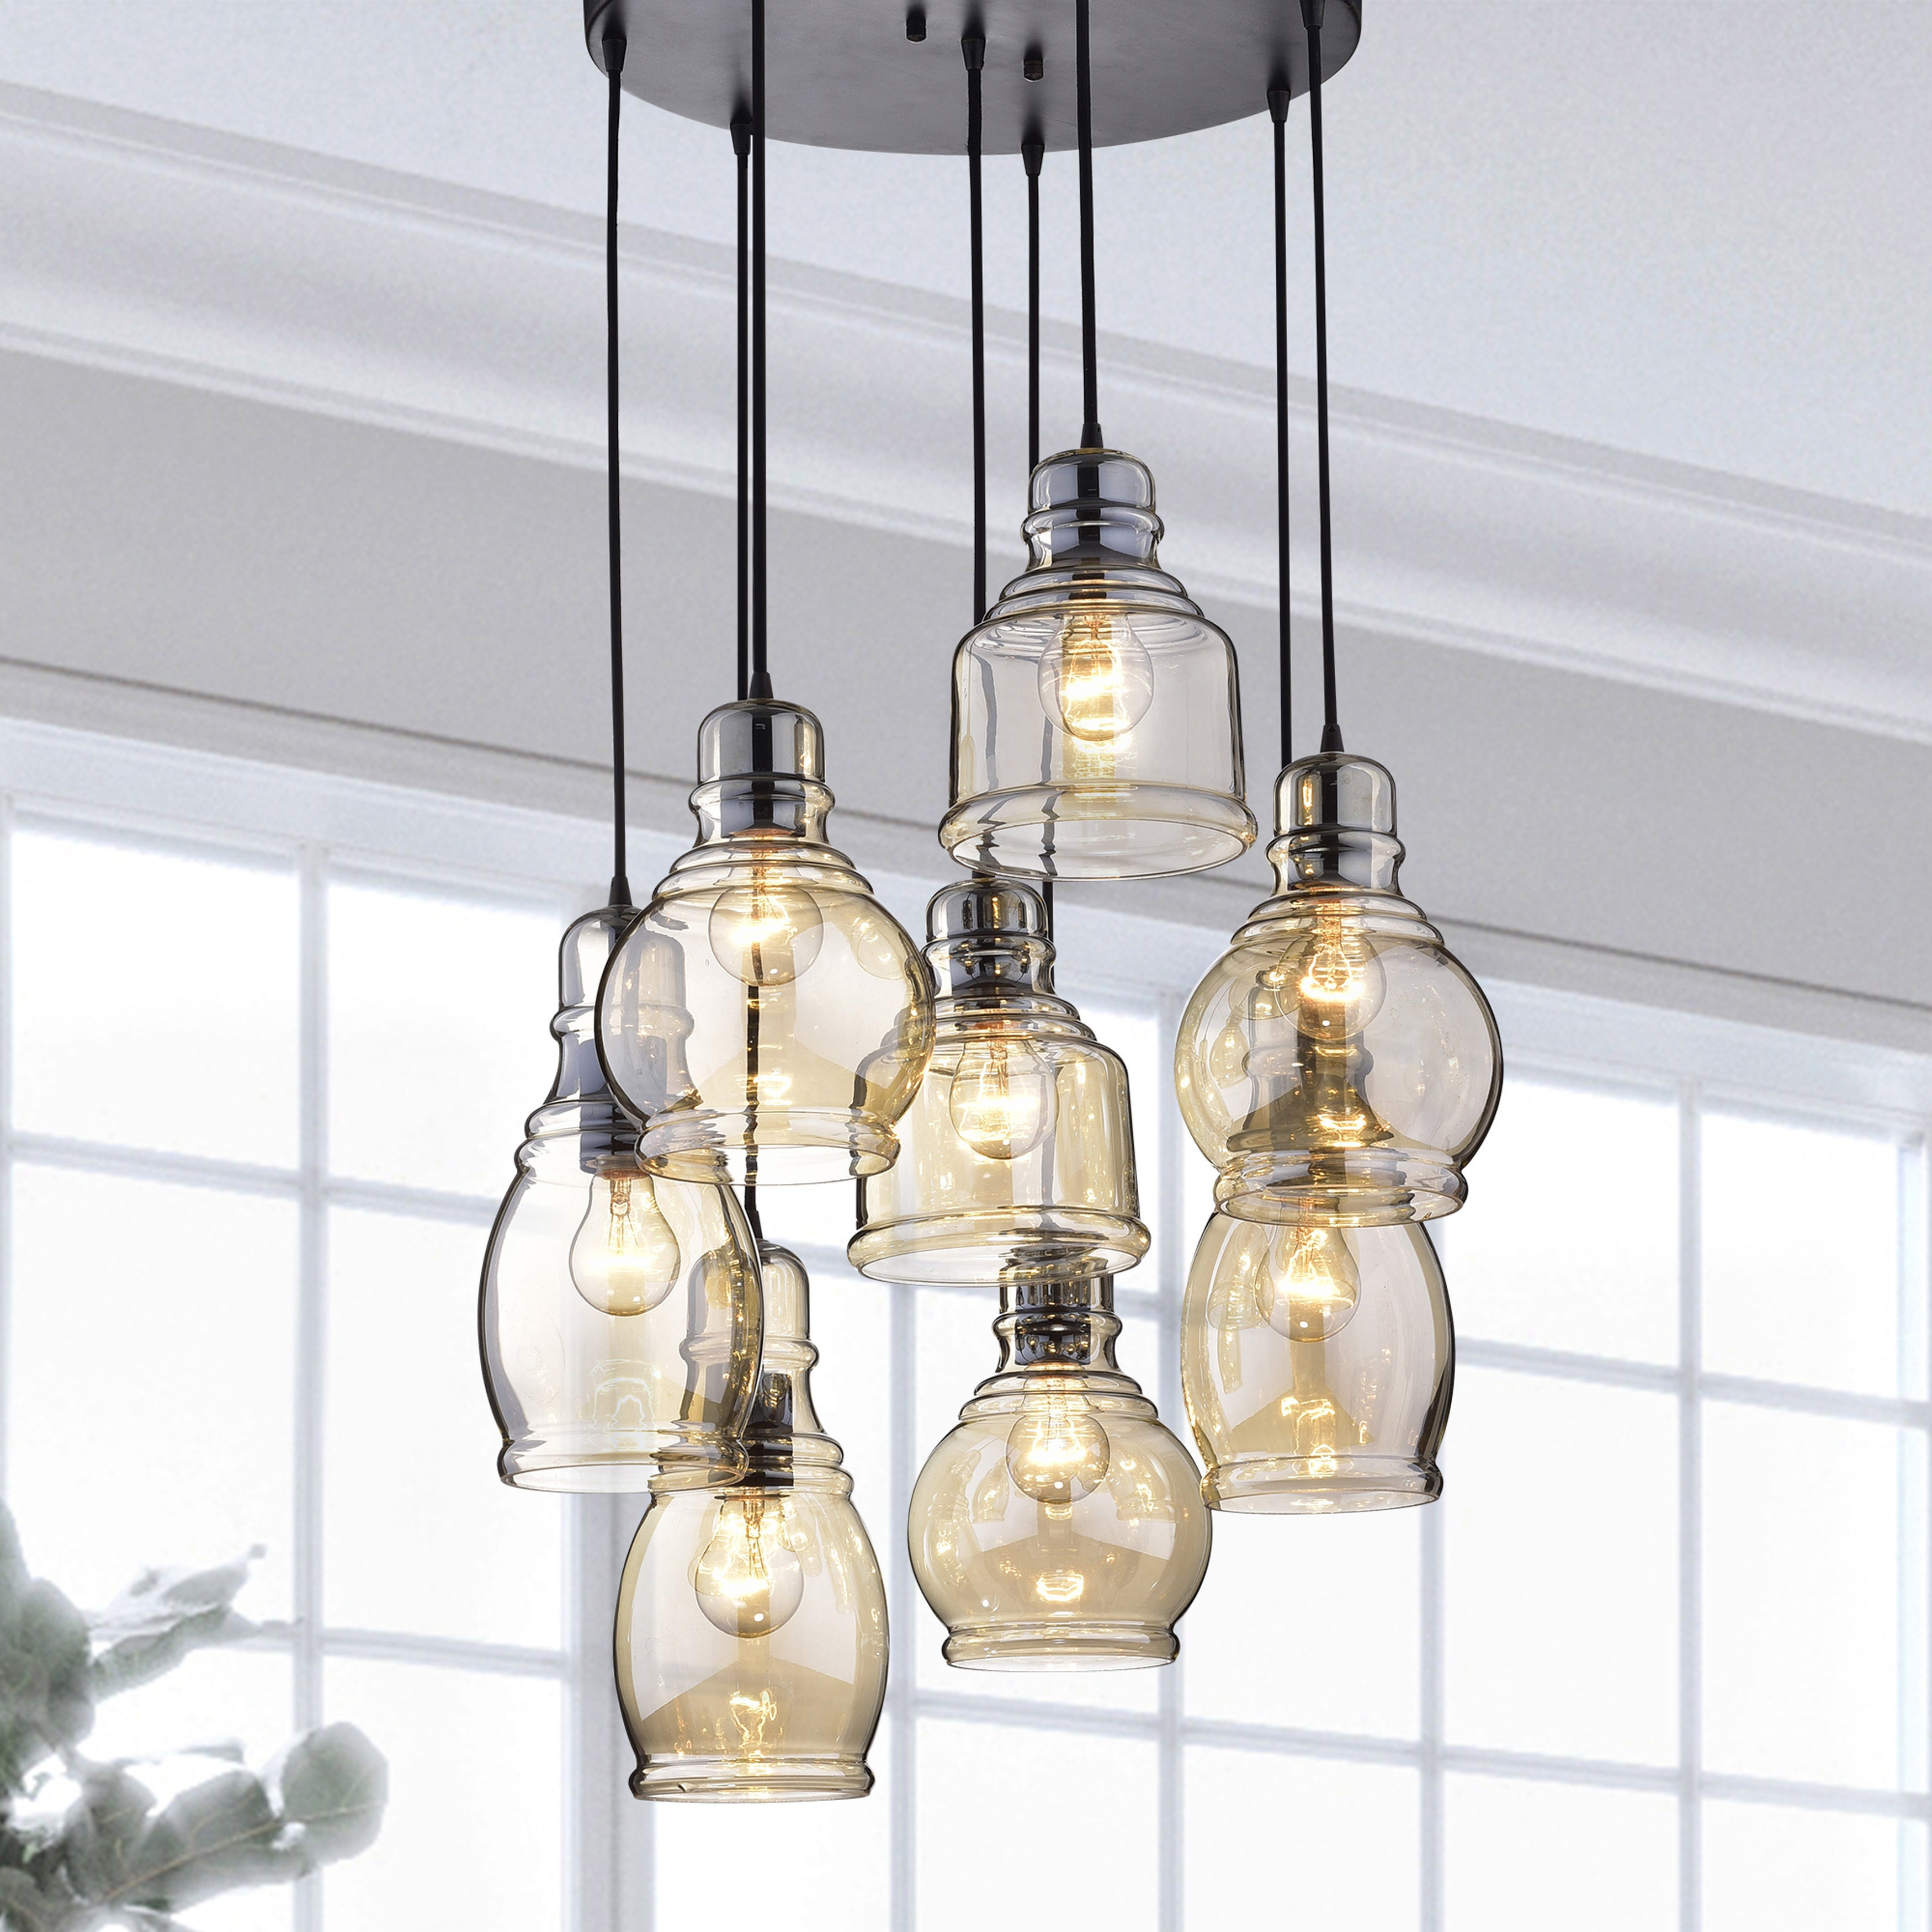 Ceiling Lights | Shop Our Best Lighting & Ceiling Fans Deals Throughout Bautista 6 Light Kitchen Island Bulb Pendants (View 14 of 30)